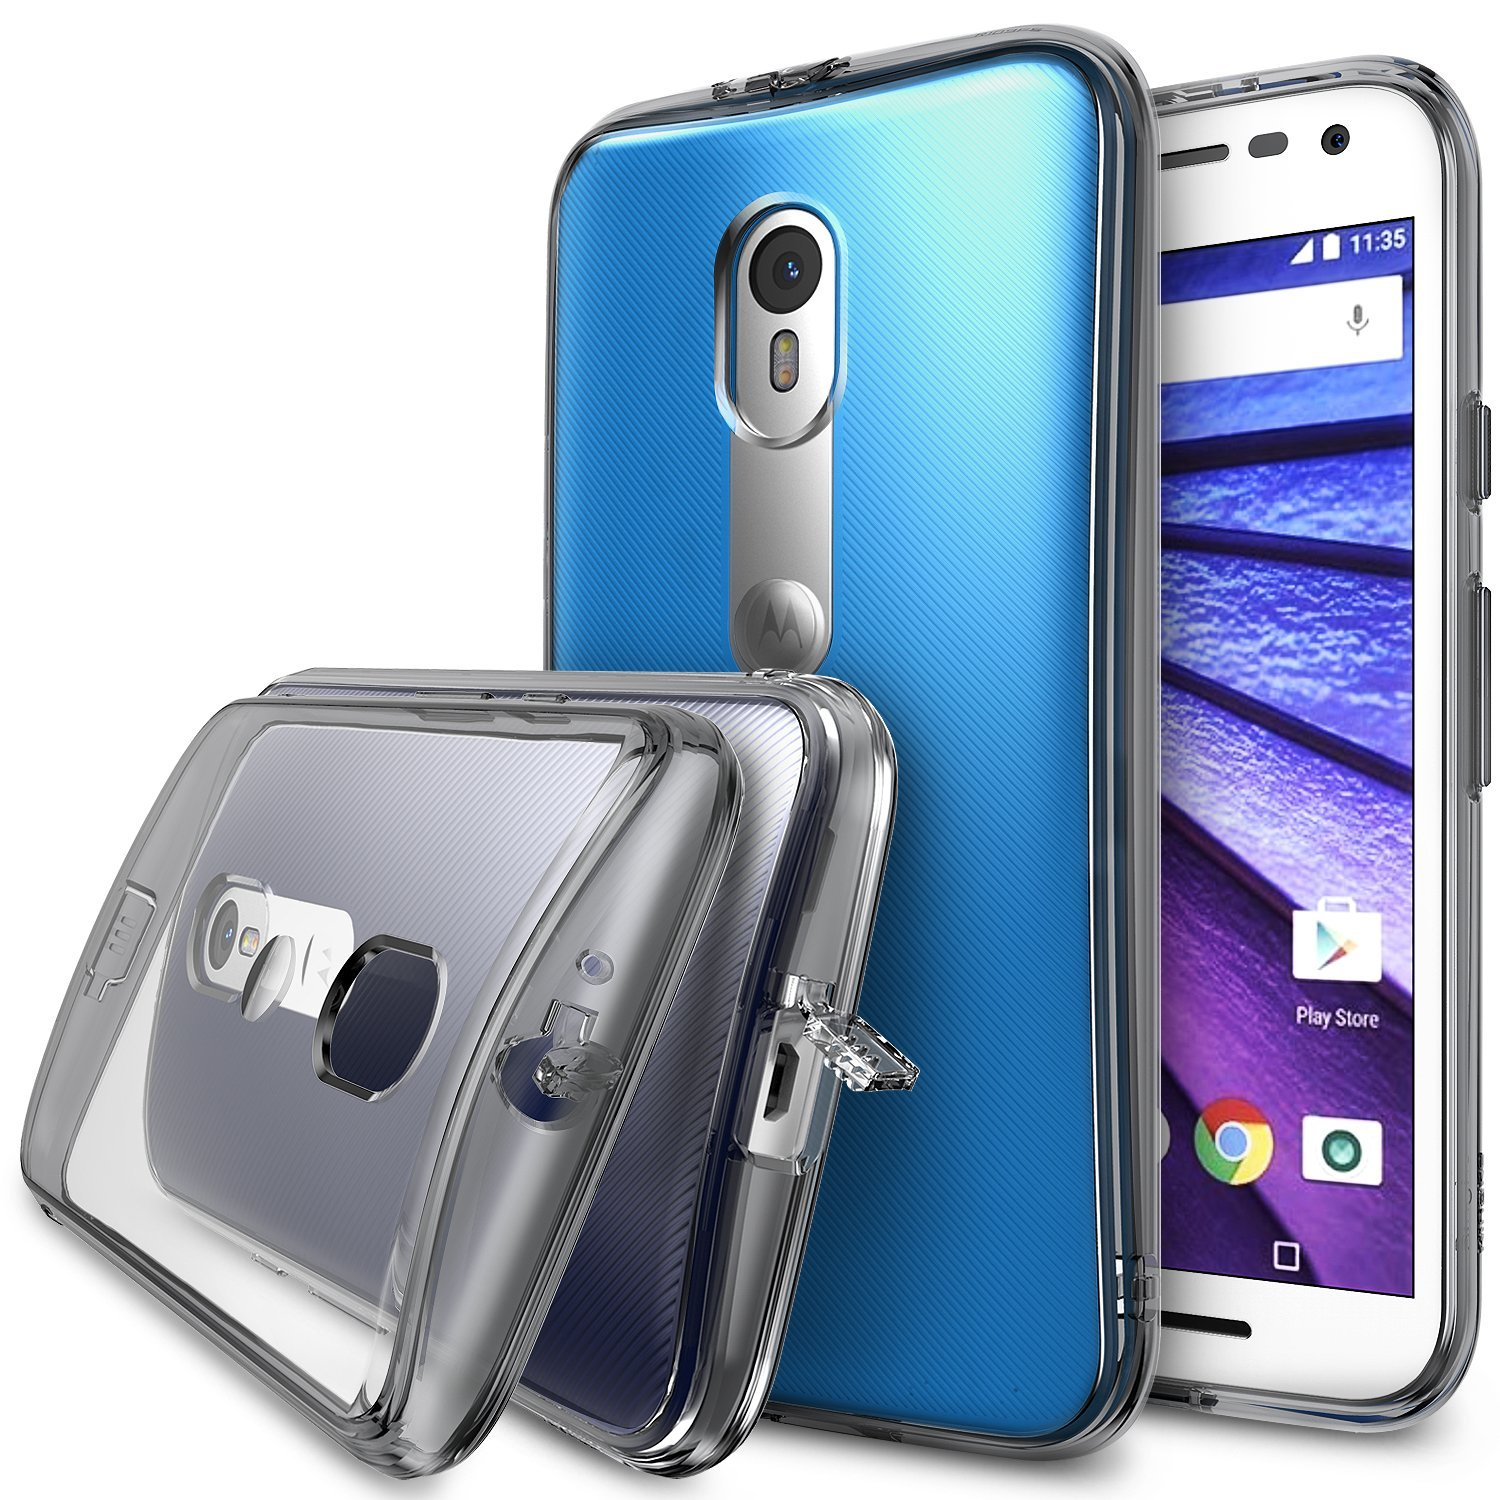 Moto G 3rd Gen 2015 Case, Ringke FUSION Series [Smoke Black] Shock Absorption Premium Clear Hard Case